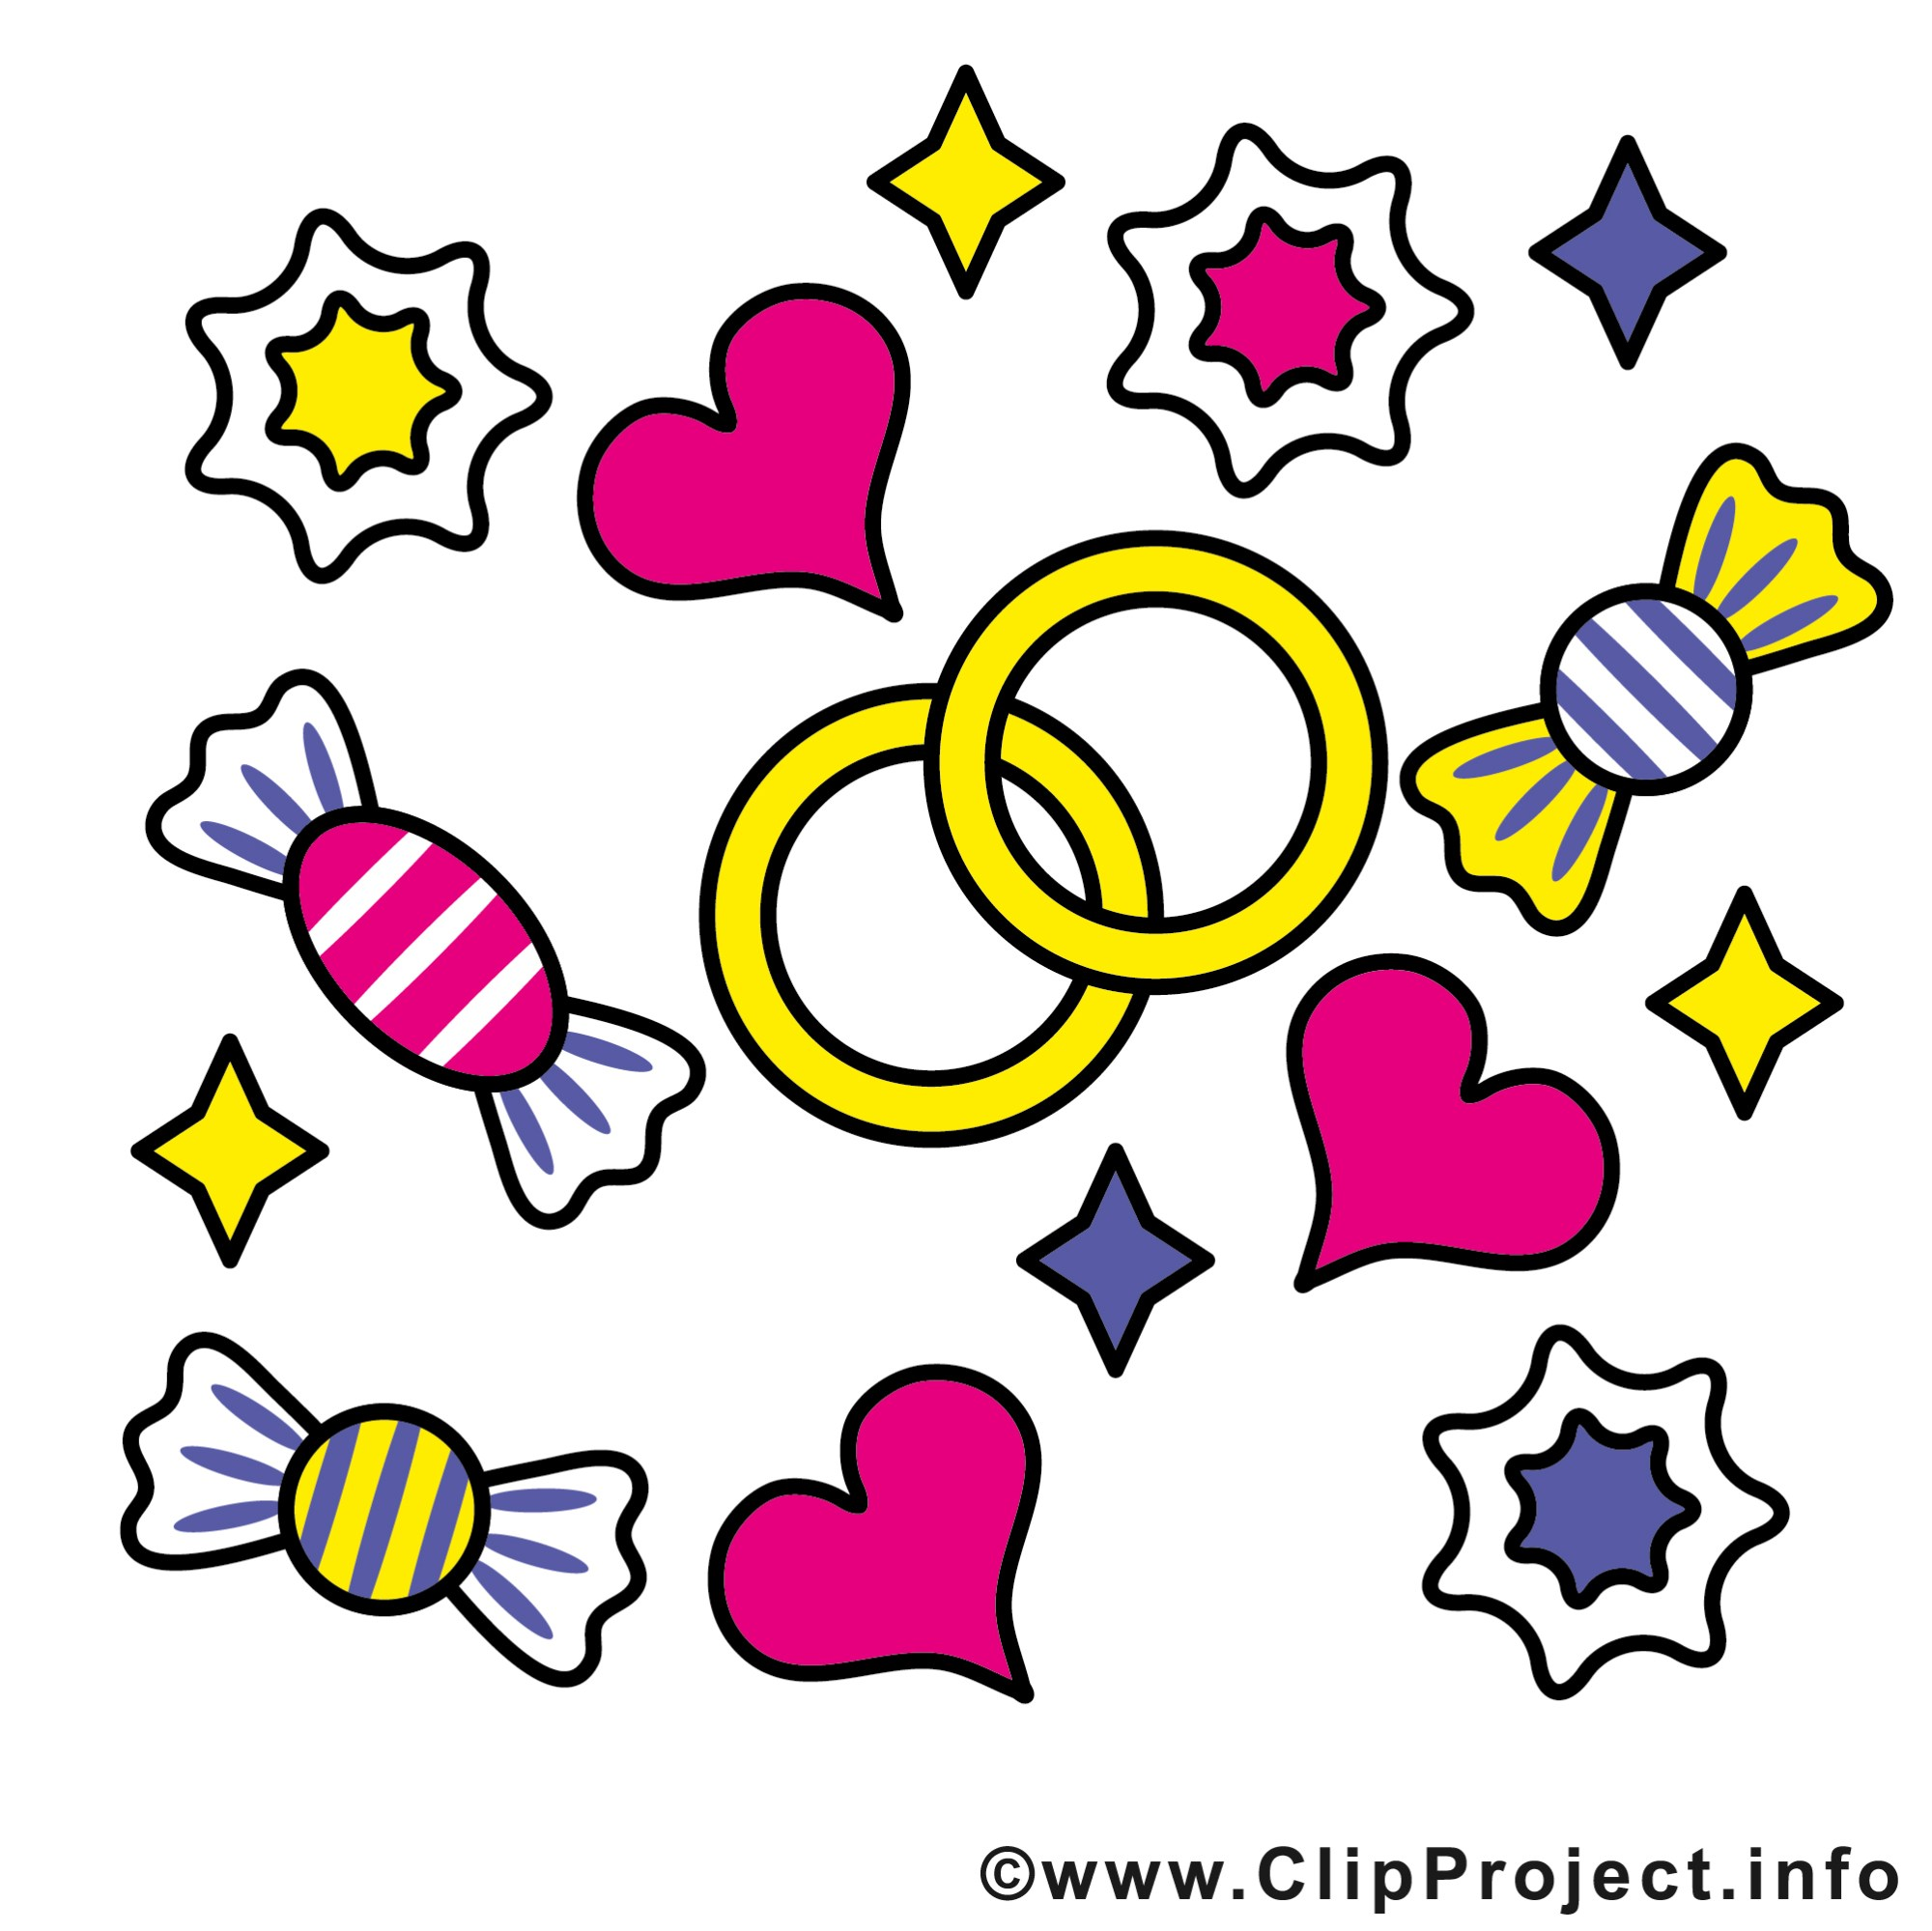 hight resolution of 2002x2001 free bing clip art